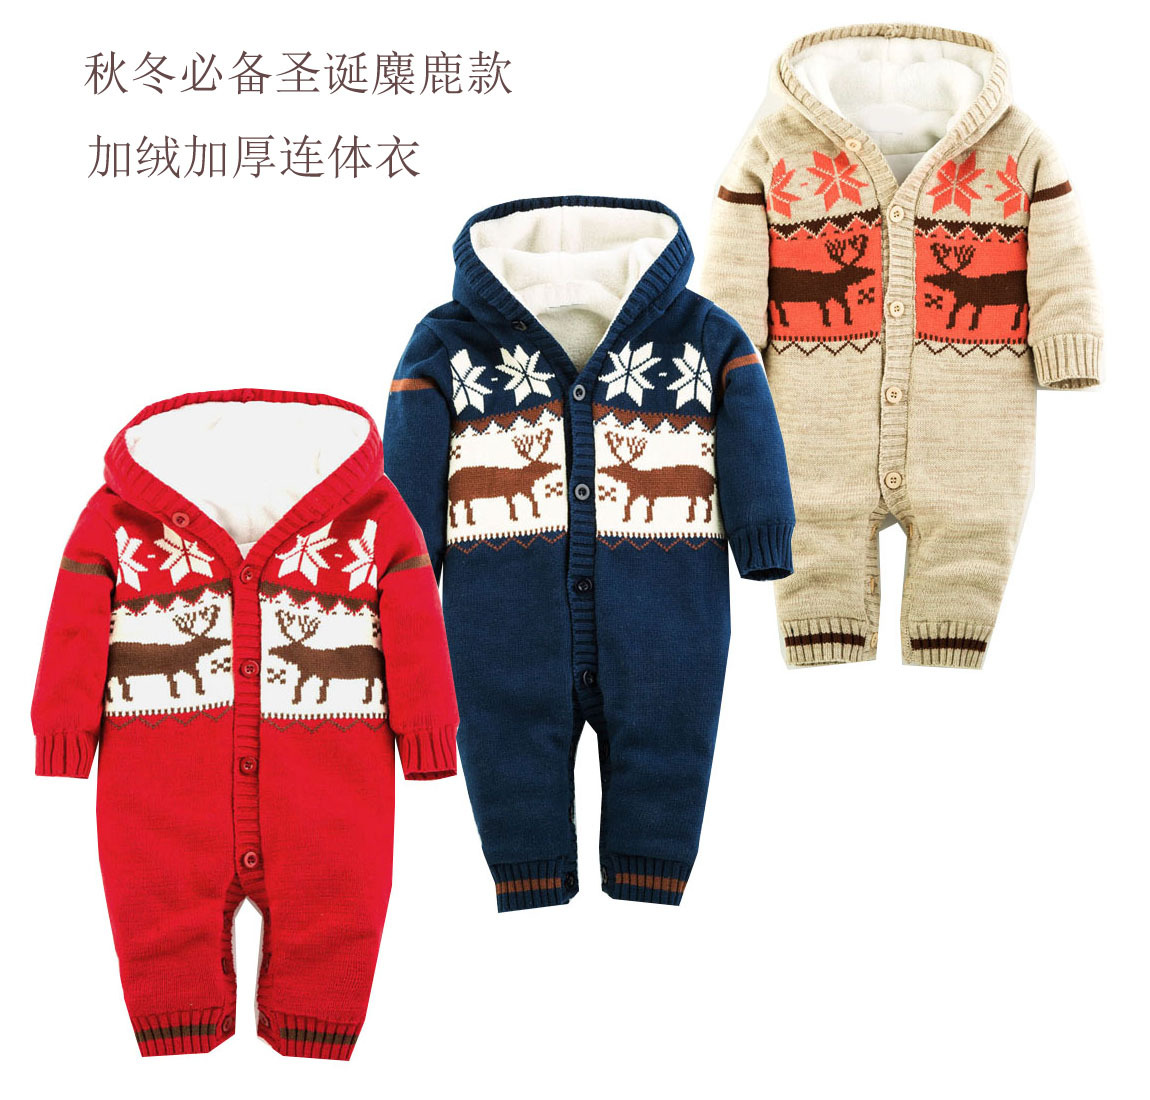 2017 winter Boys Girls Warm Romper Knitted Sweater Christmas Deer Hooded Outwear Jumpsuits Baby Rompers Kid Clothes 2017 baby jumpsuits winter overalls deer kinitted rompers climbing clothes sets for newborn boys girls costumes hooded sweater